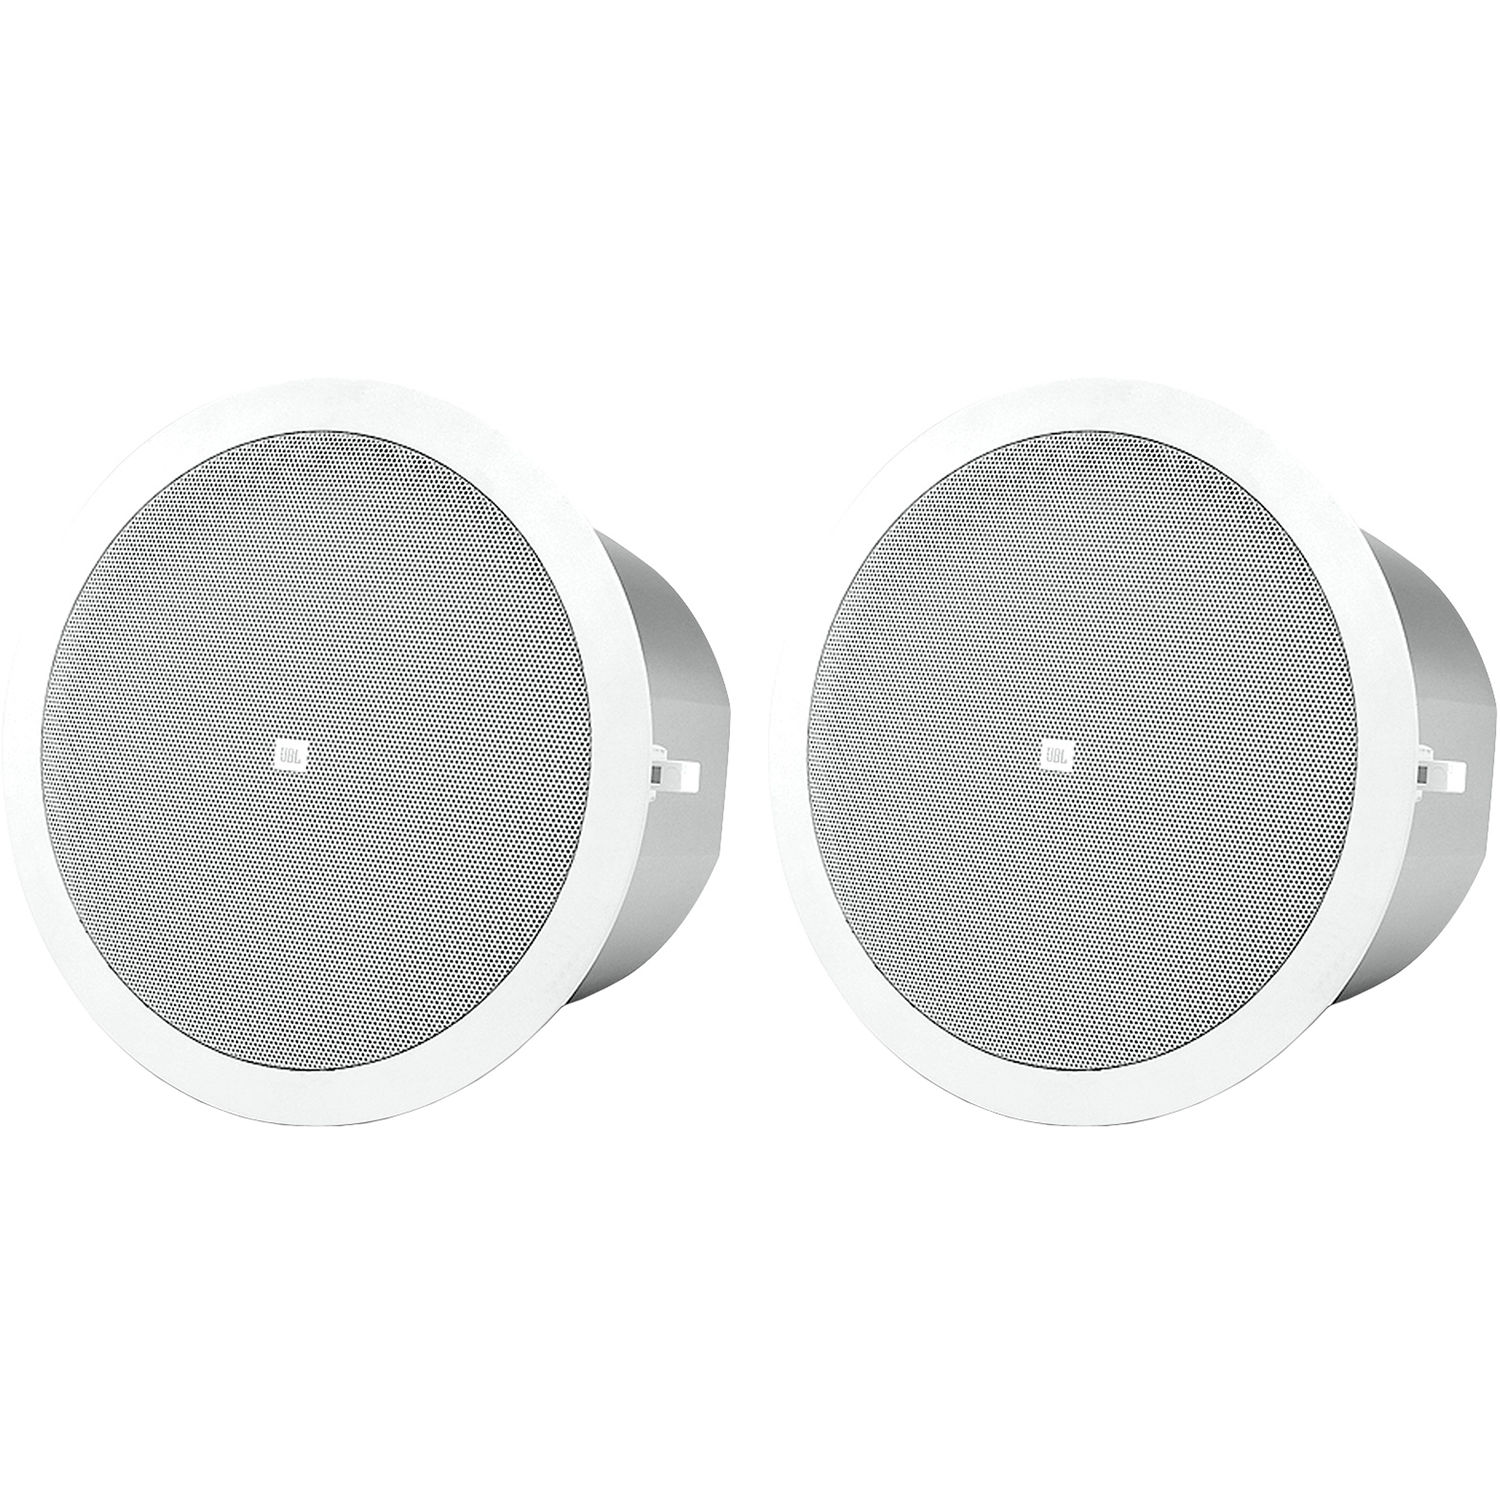 passive edgemax professional compact ceiling pro premium speakers phaseguide pair technology loudspeaker control bose products jbl with white media way